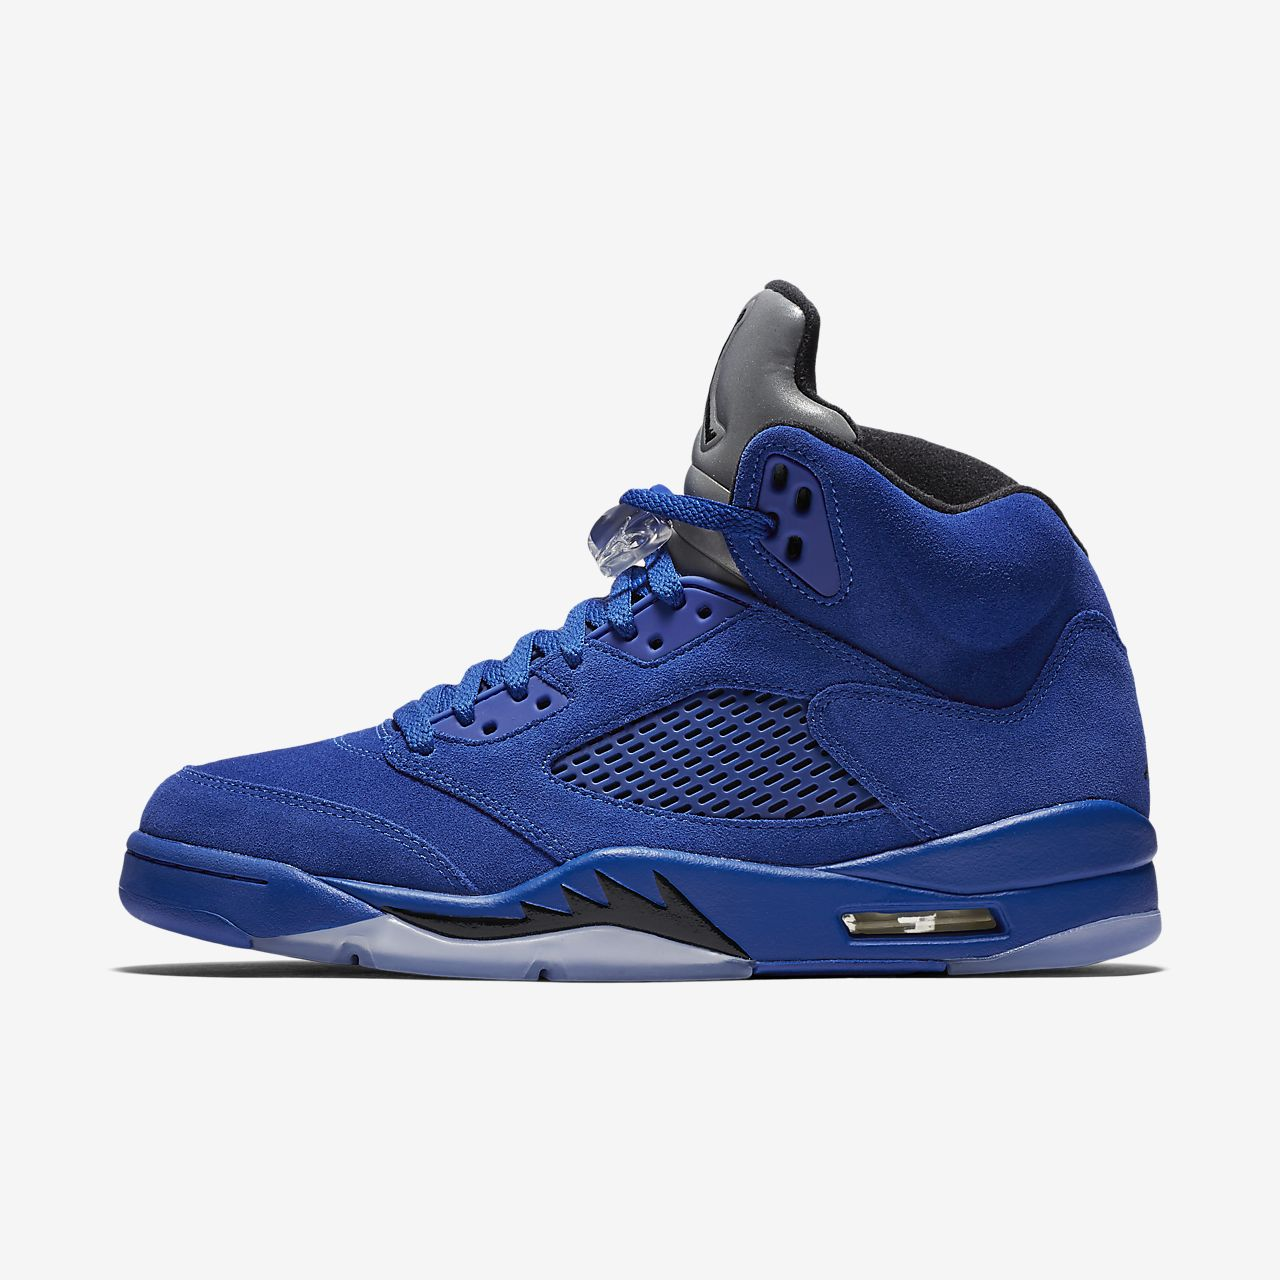 Find jordan retro 5 from a vast selection of Shoes for Men. Get great deals on eBay!